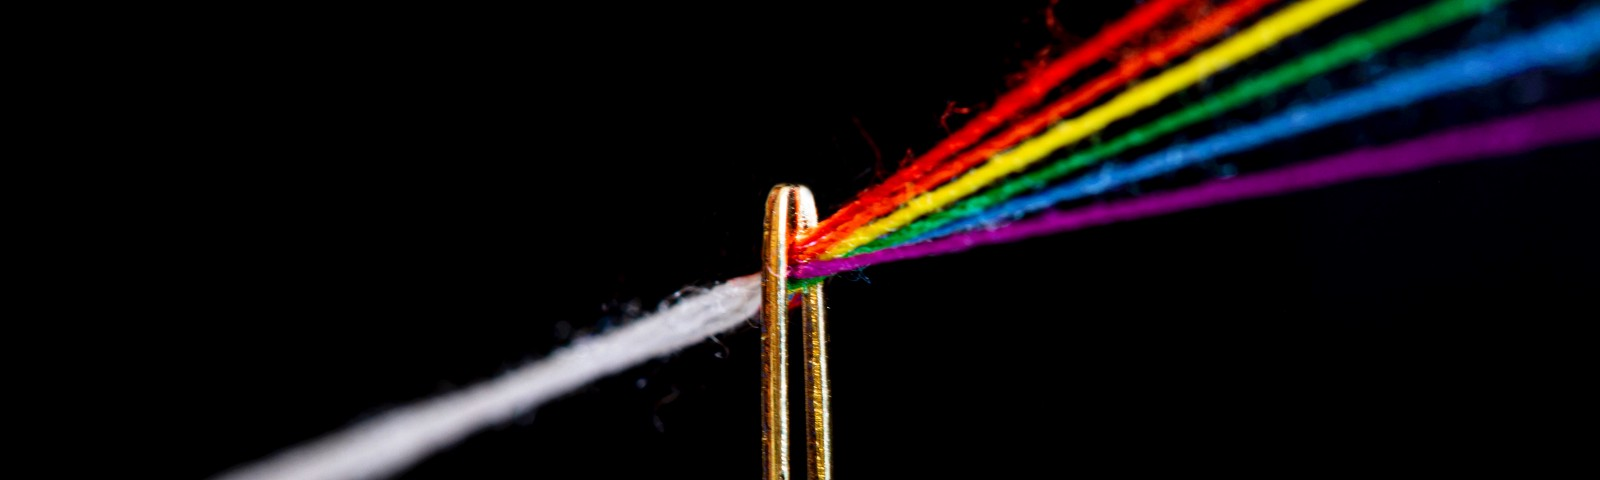 a white thread drawn through the eye of a needle turns into threads in all of the colors of the rainbow